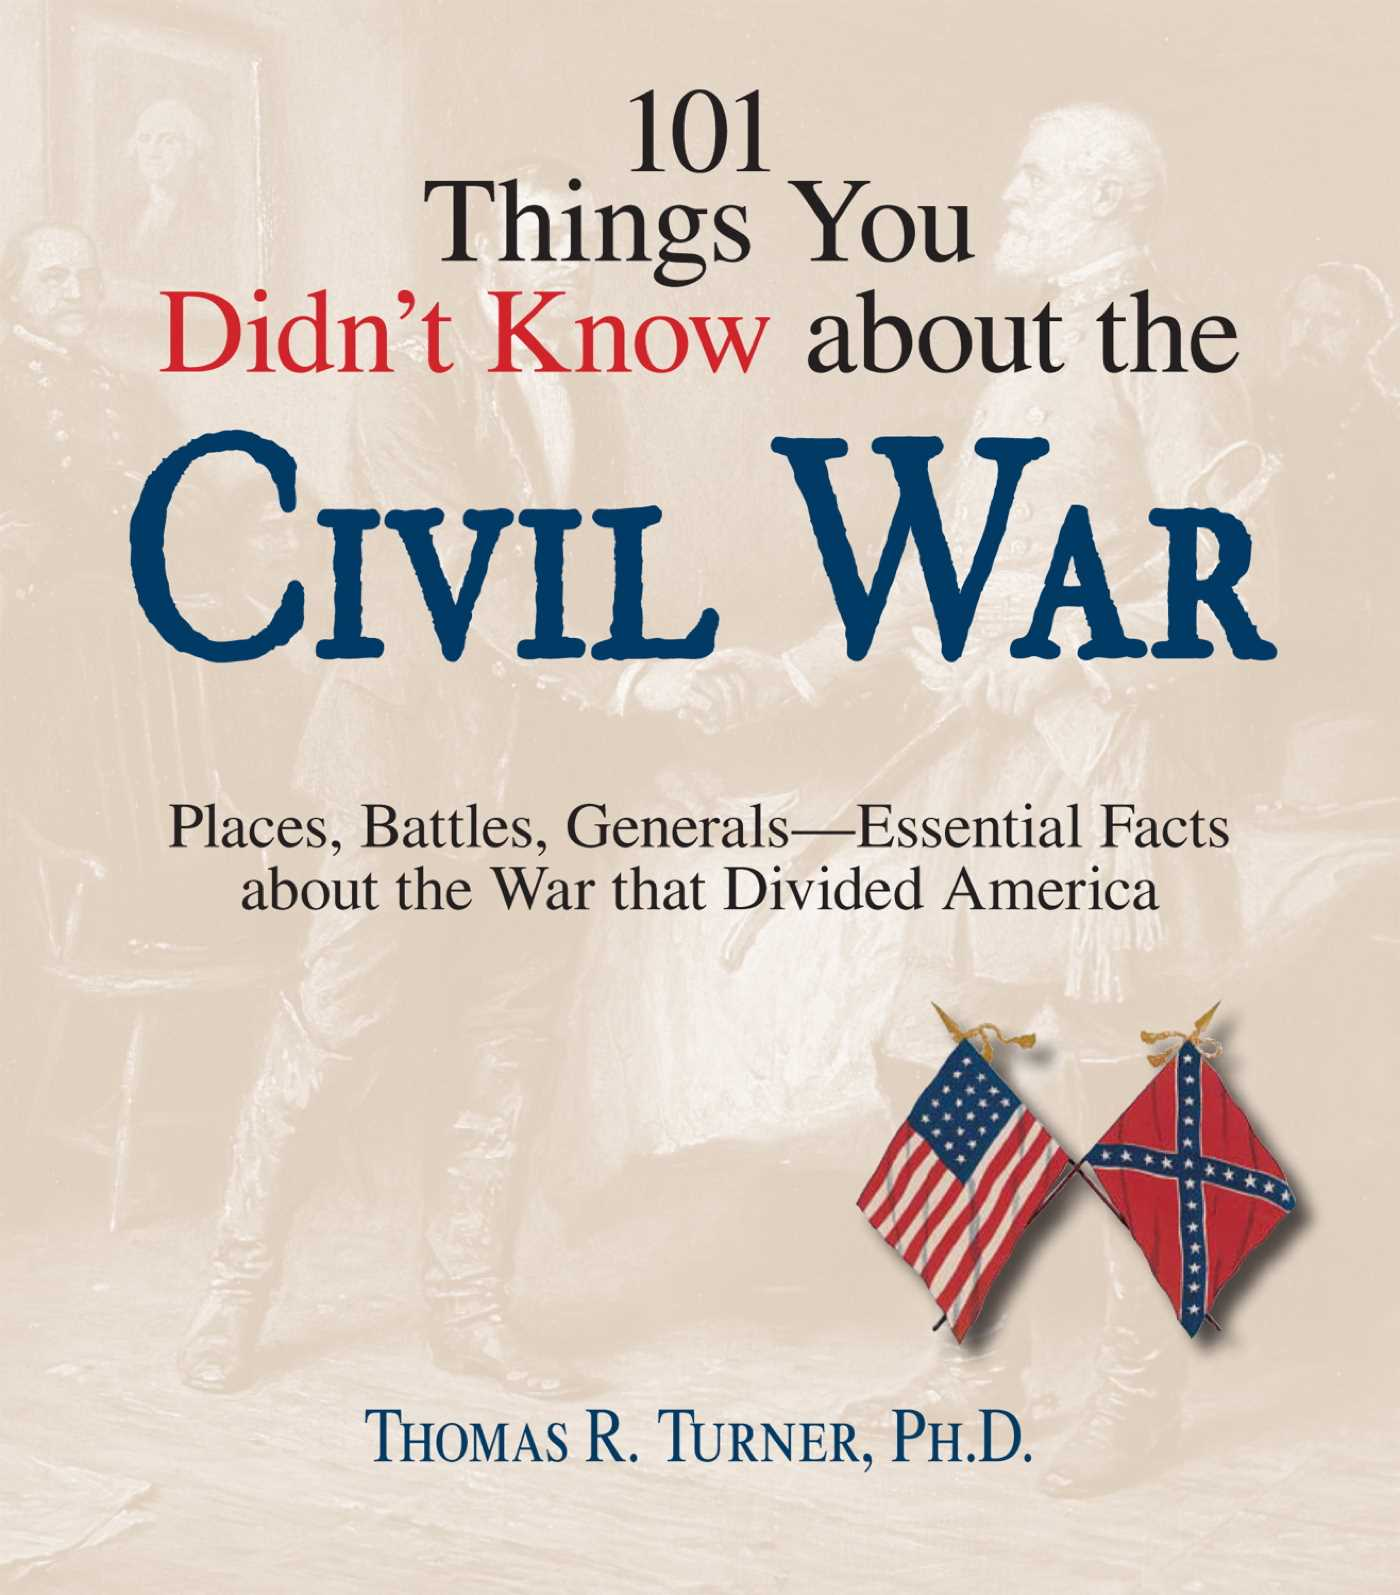 101 things you didnt know about the civil war 9781440516689 hr